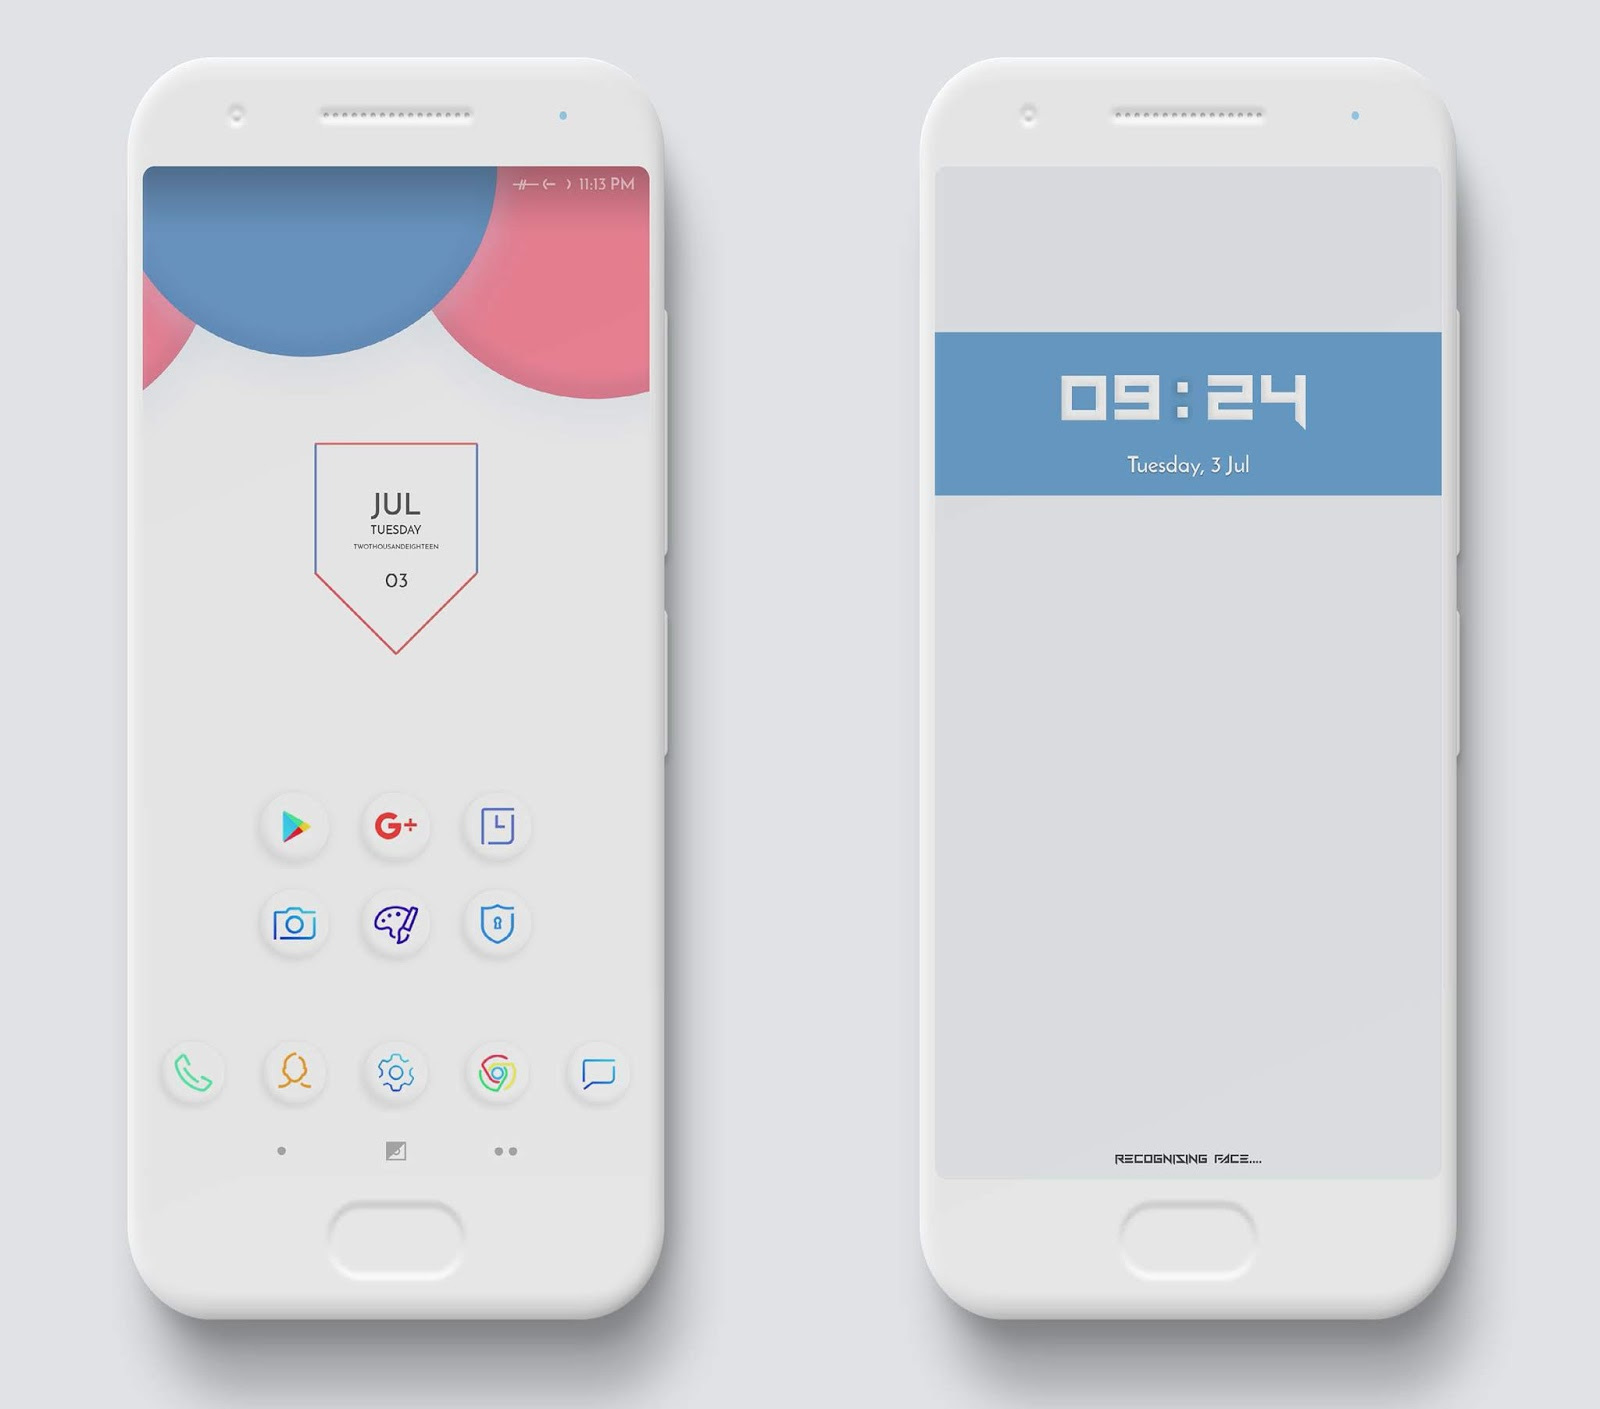 Clay V2 Huawei Themes For EMUI 4